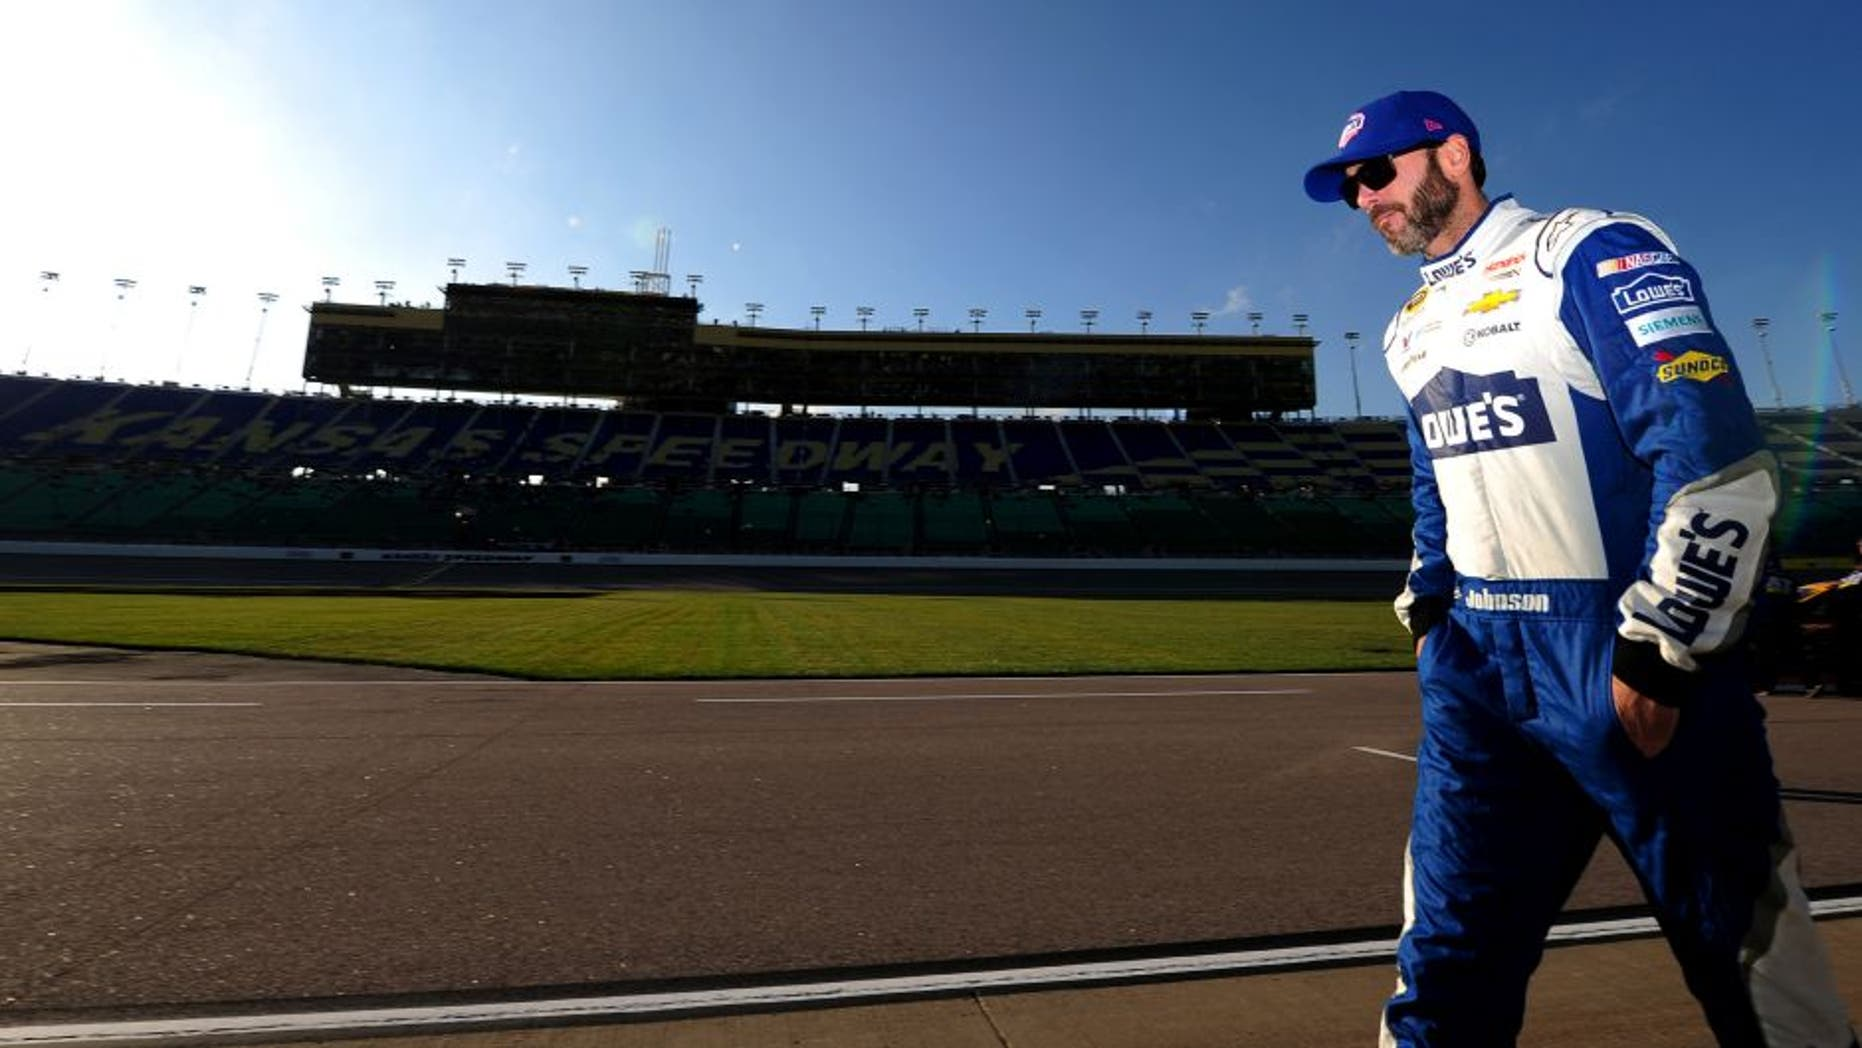 KANSAS CITY, KS - OCTOBER 14: Jimmie Johnson, driver of the #48 Lowe's Chevrolet, walks on the grid prior to qualifying for the NASCAR Sprint Cup Series Hollywood Casino 400 at Kansas Speedway on October 14, 2016 in Kansas City, Kansas. (Photo by Jeff Curry/Getty Images)